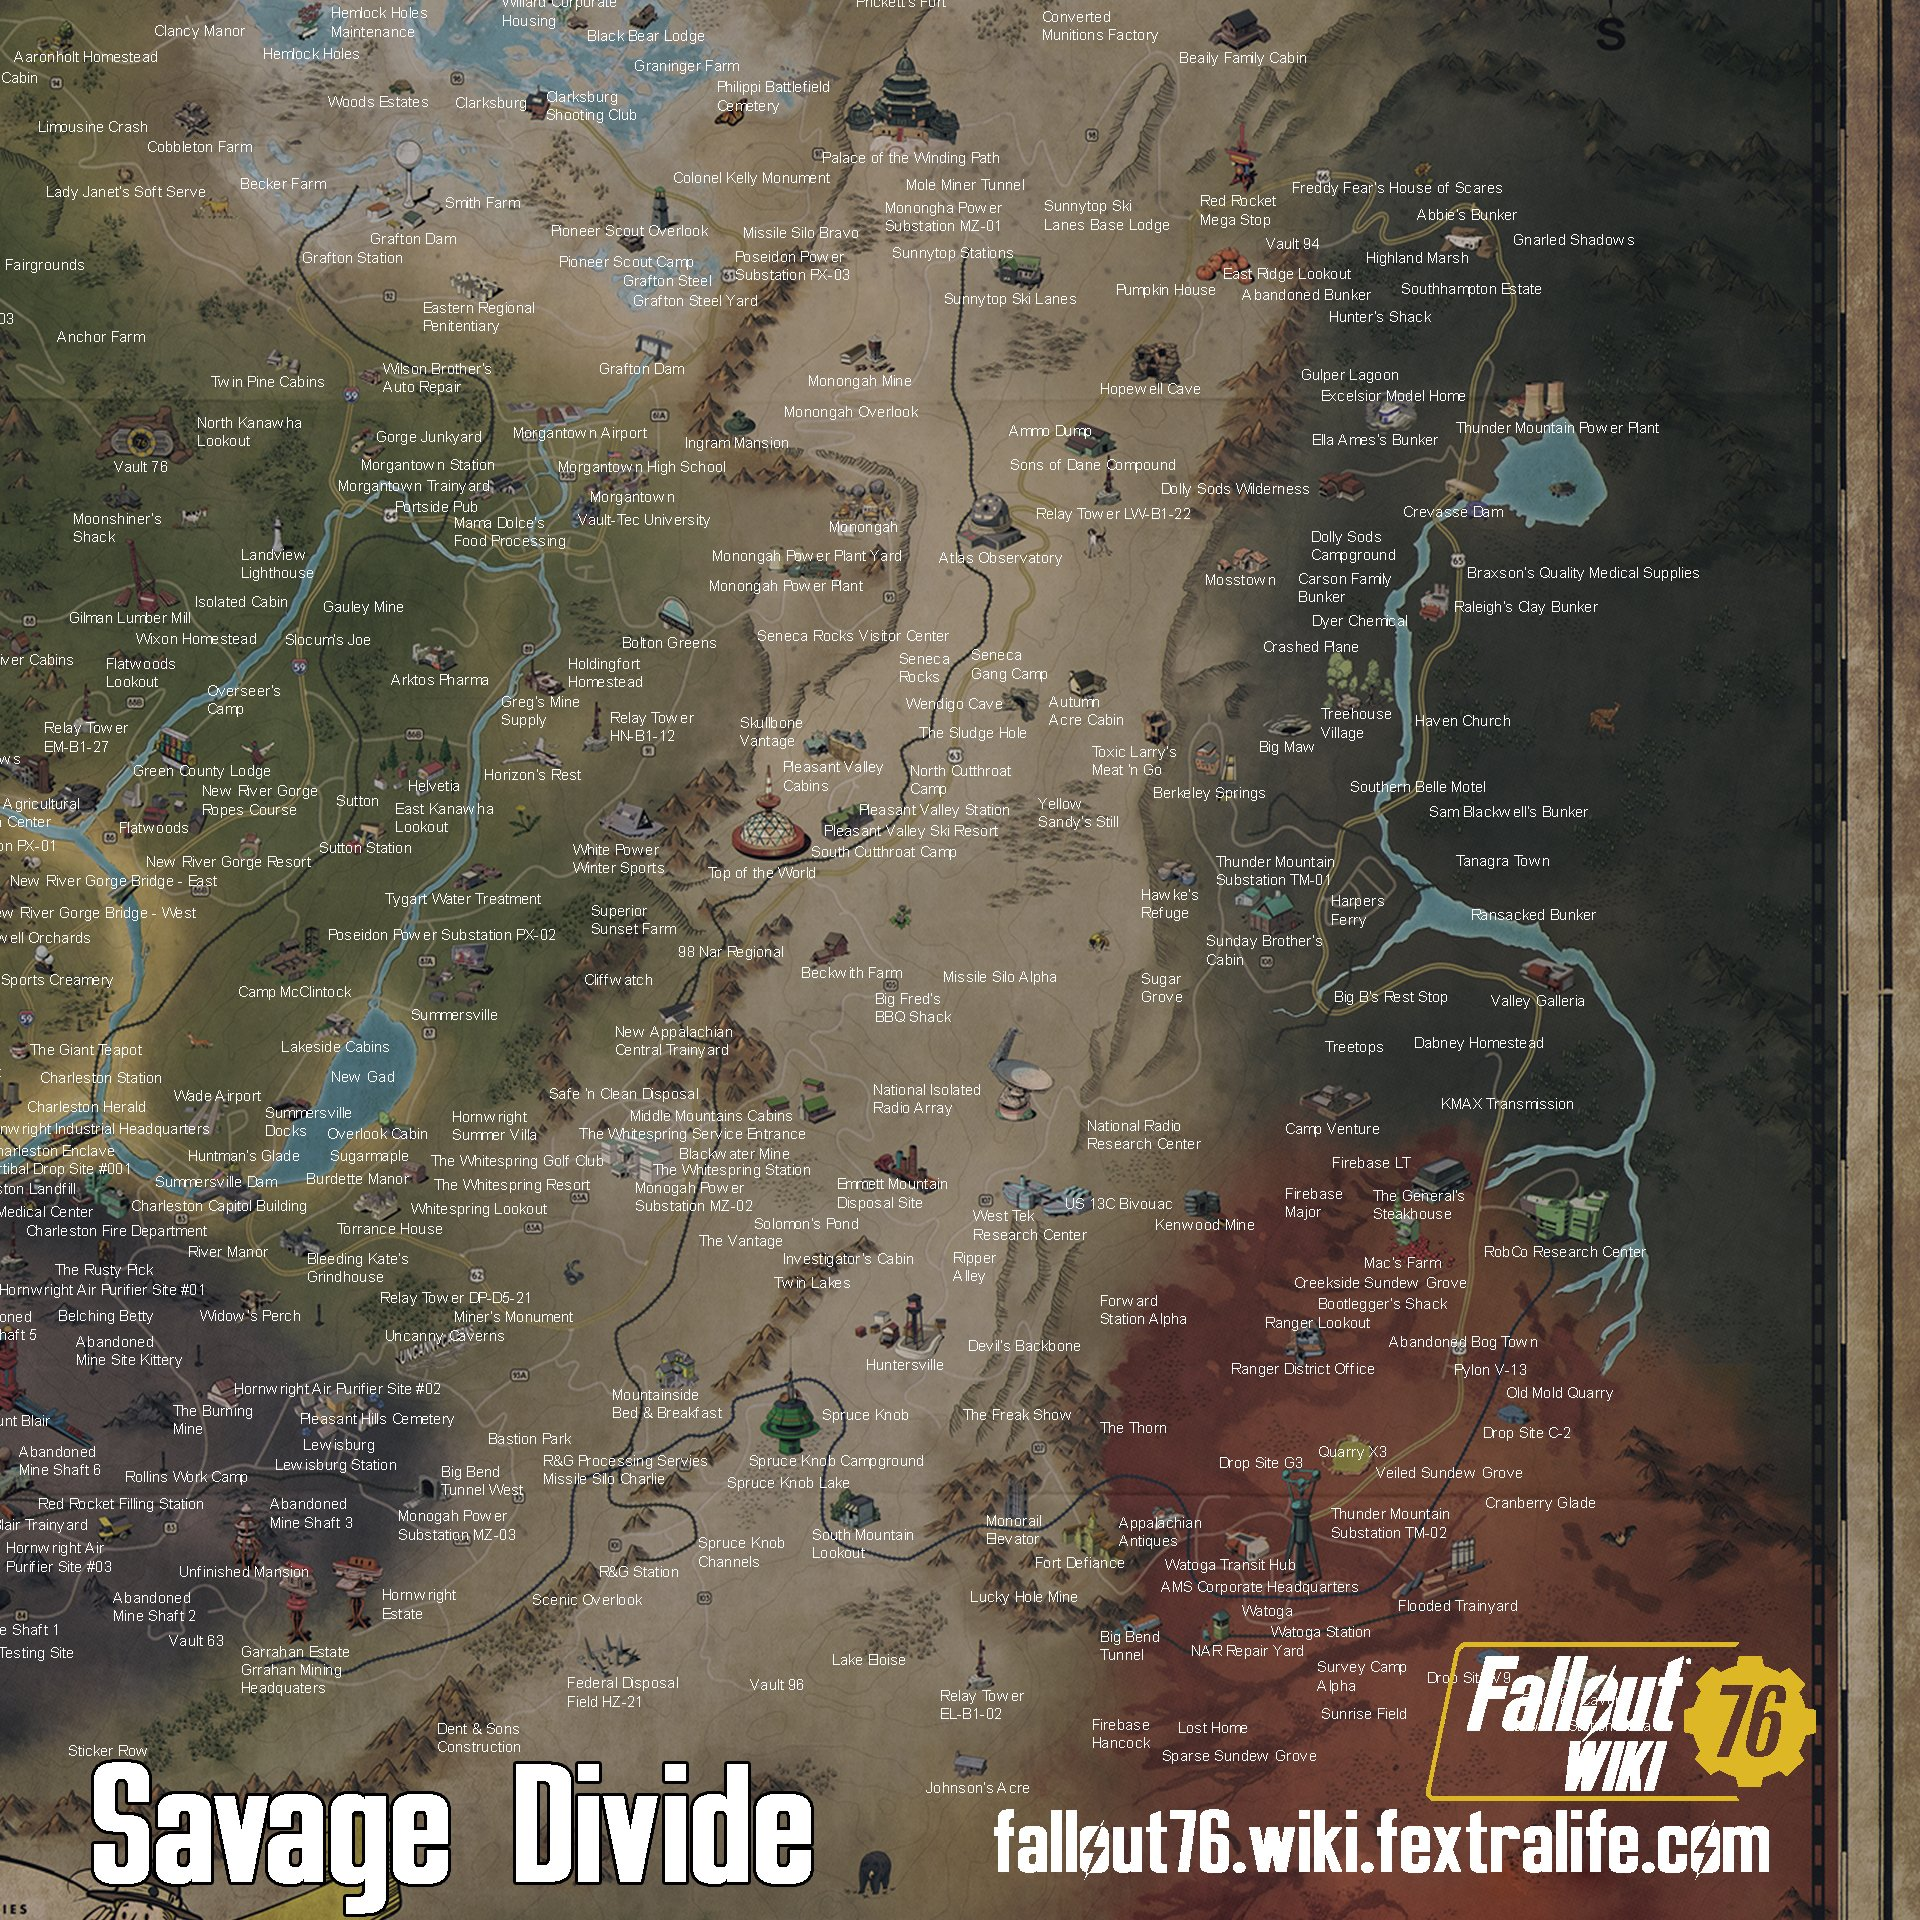 The Savage Divide | Fallout 76 Wiki